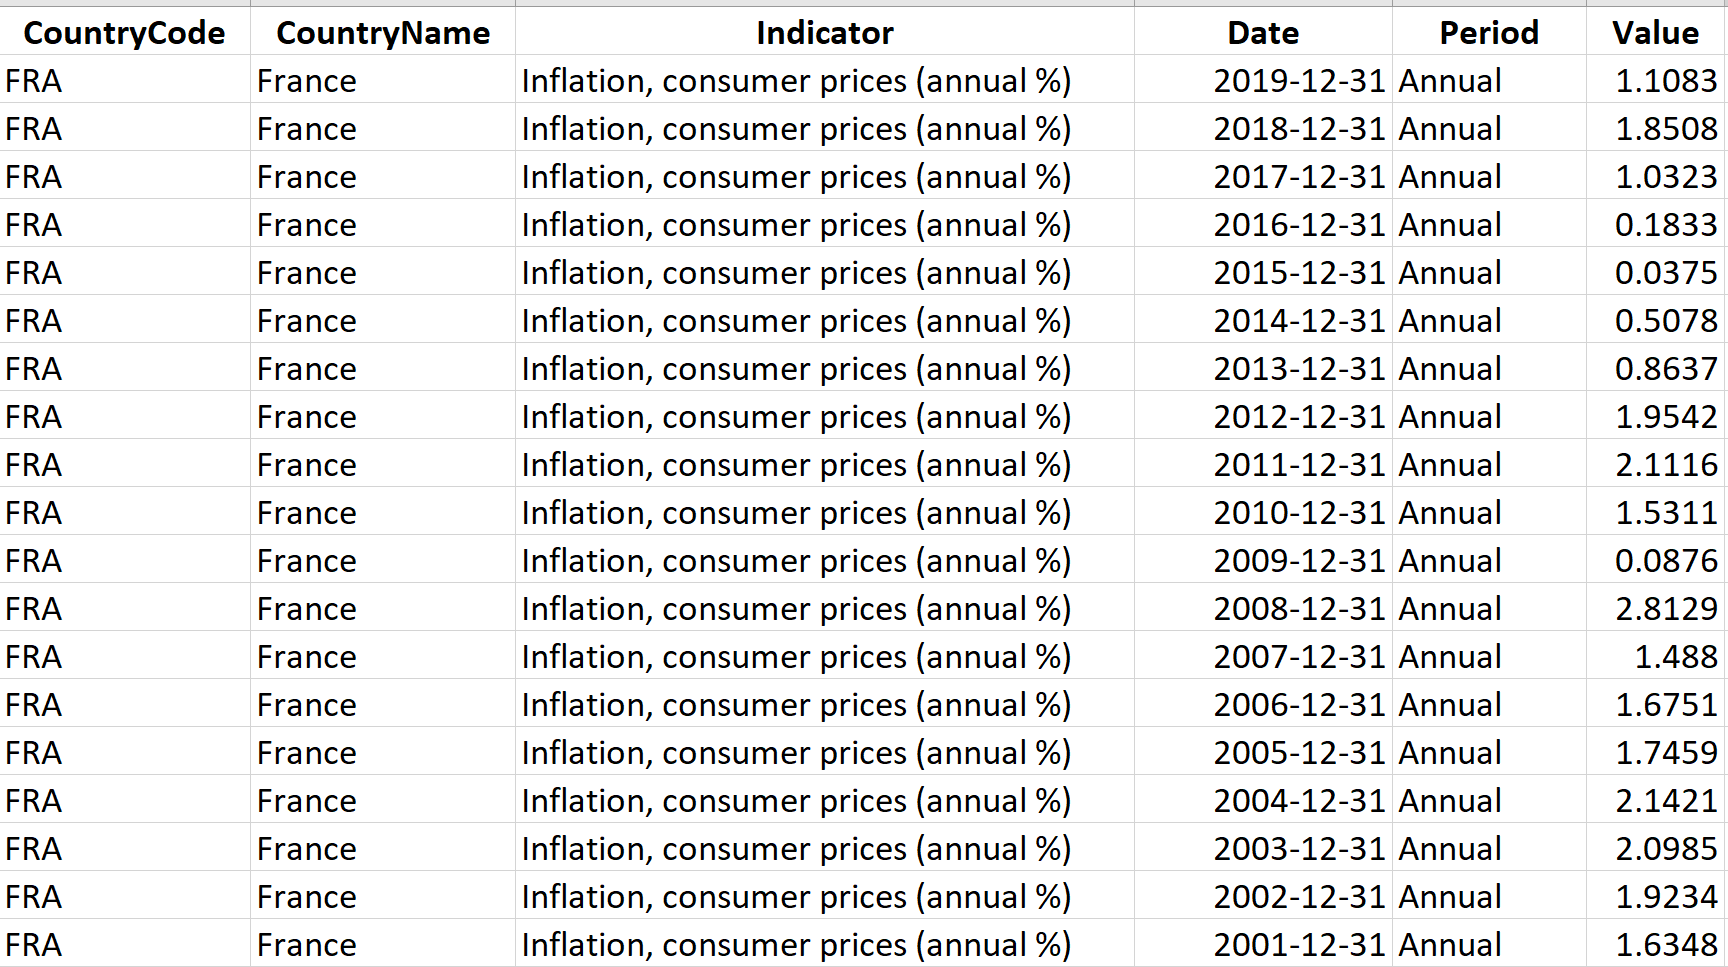 Inflation Consumer Prices Annual for France